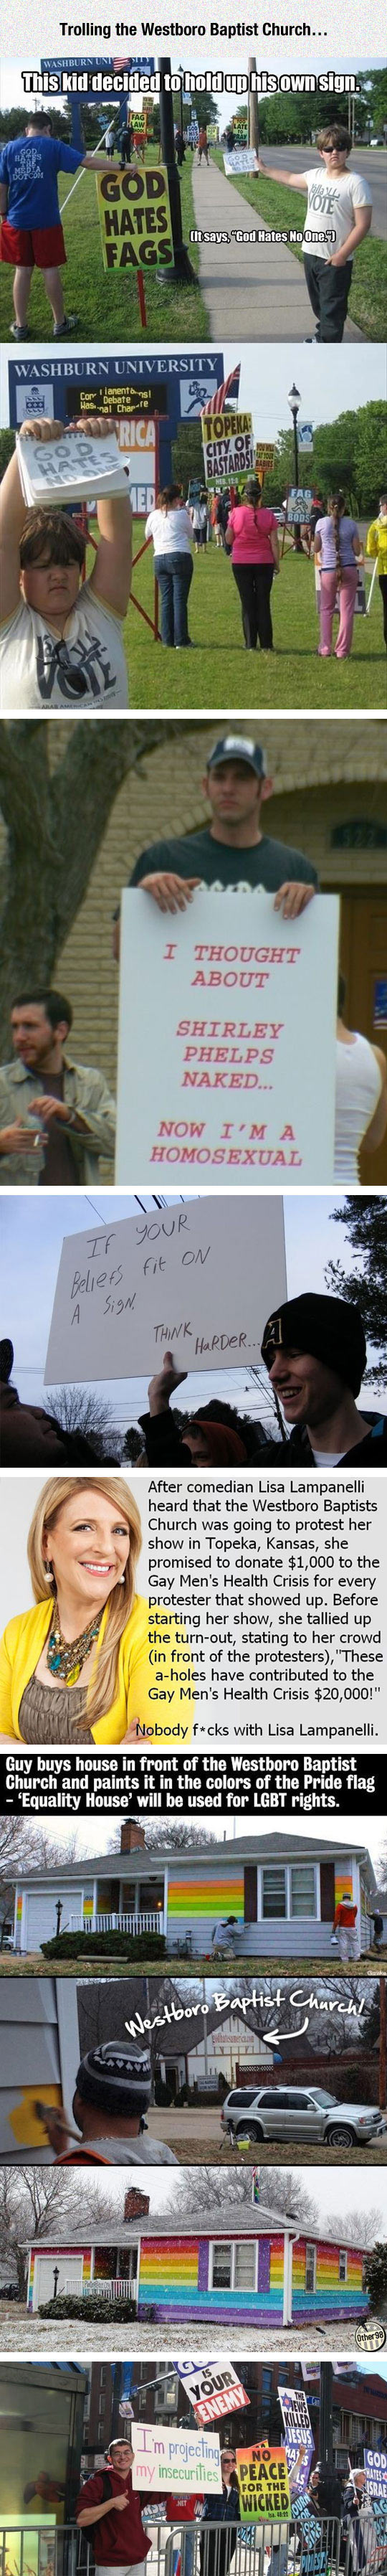 funny-church-sign-gay-protester